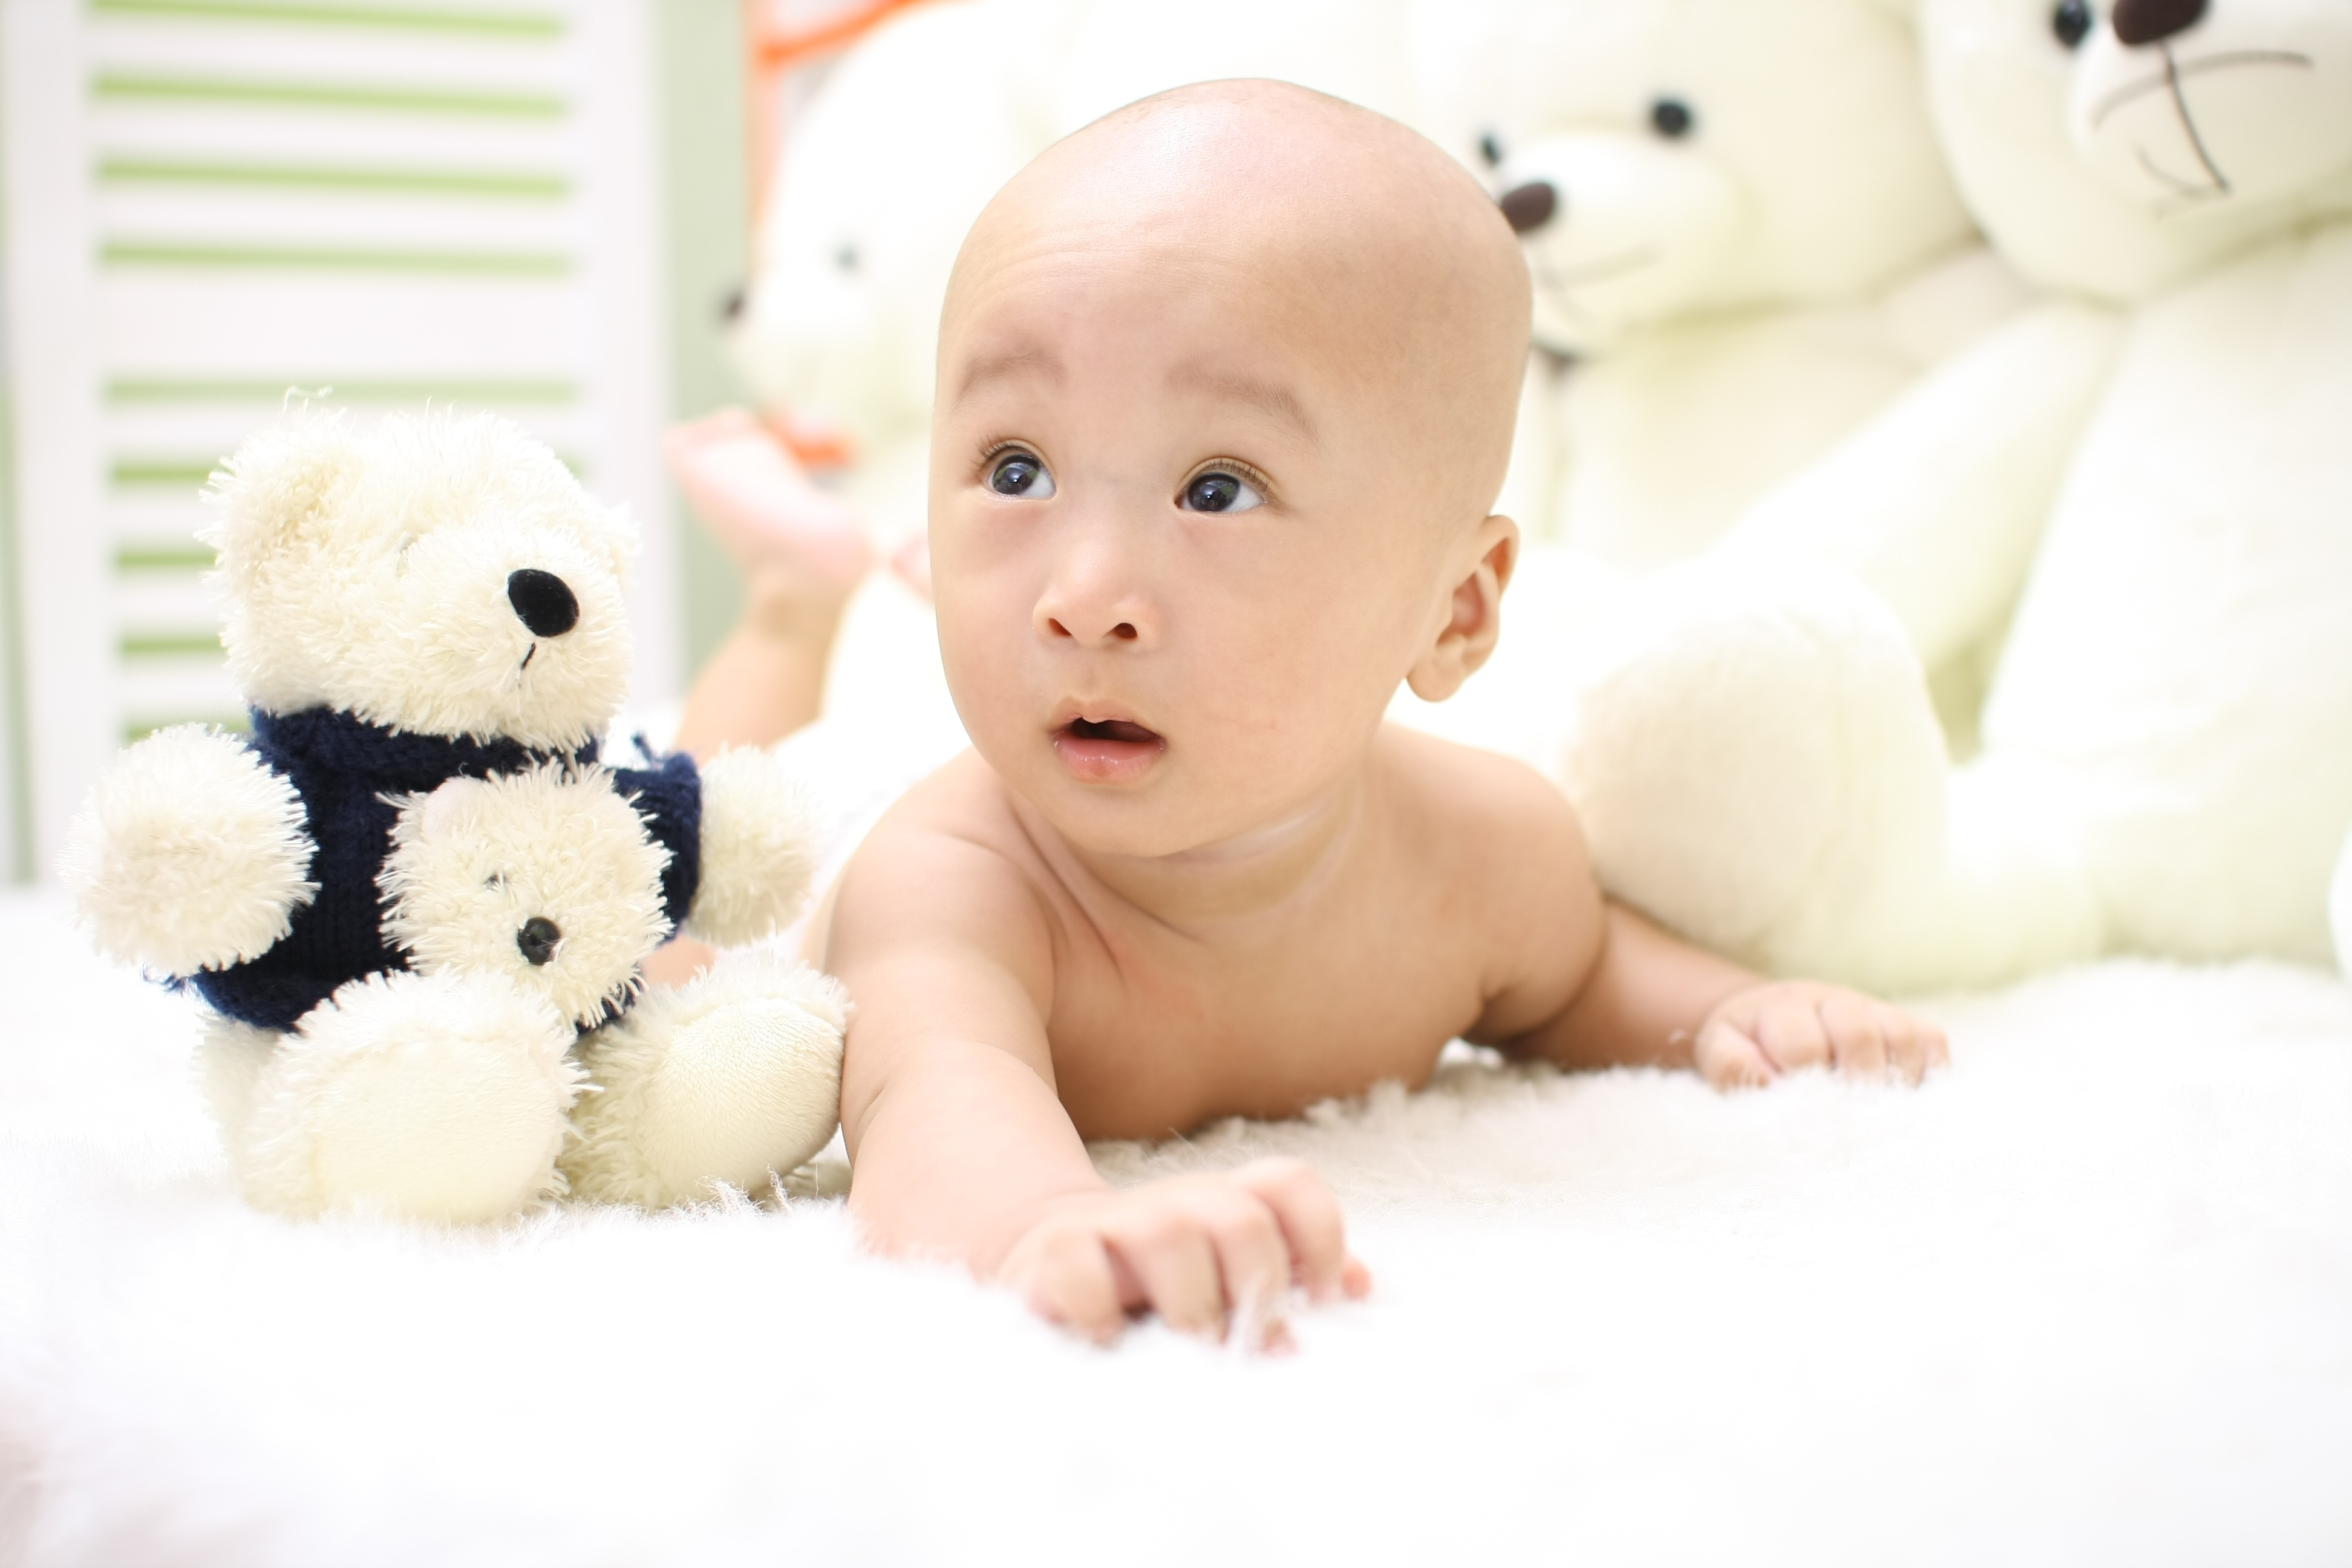 Free stock photo of adorable asian baby free download voltagebd Choice Image